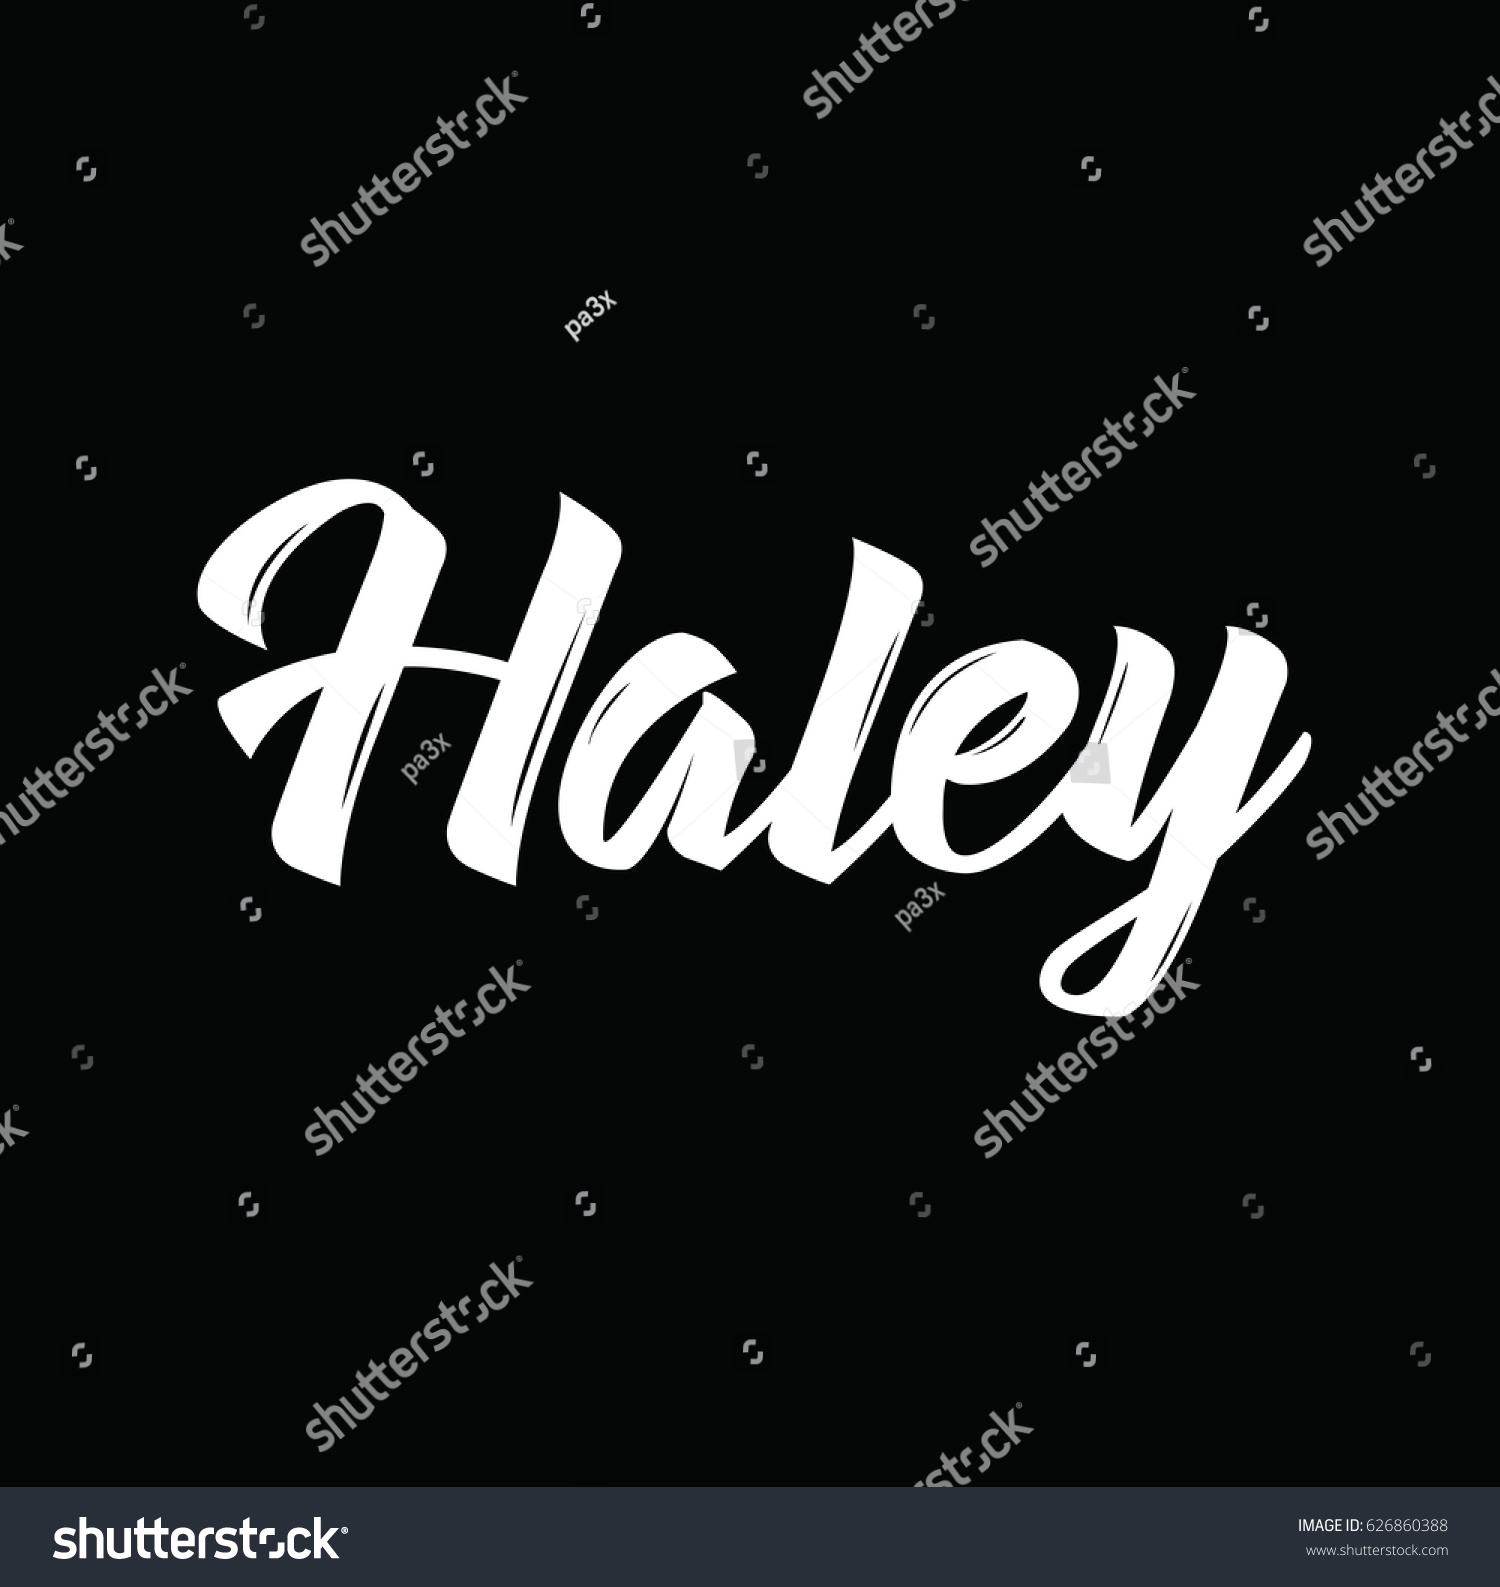 Haley Text Design Vector Calligraphy Typography Stock Vector 1500x1587